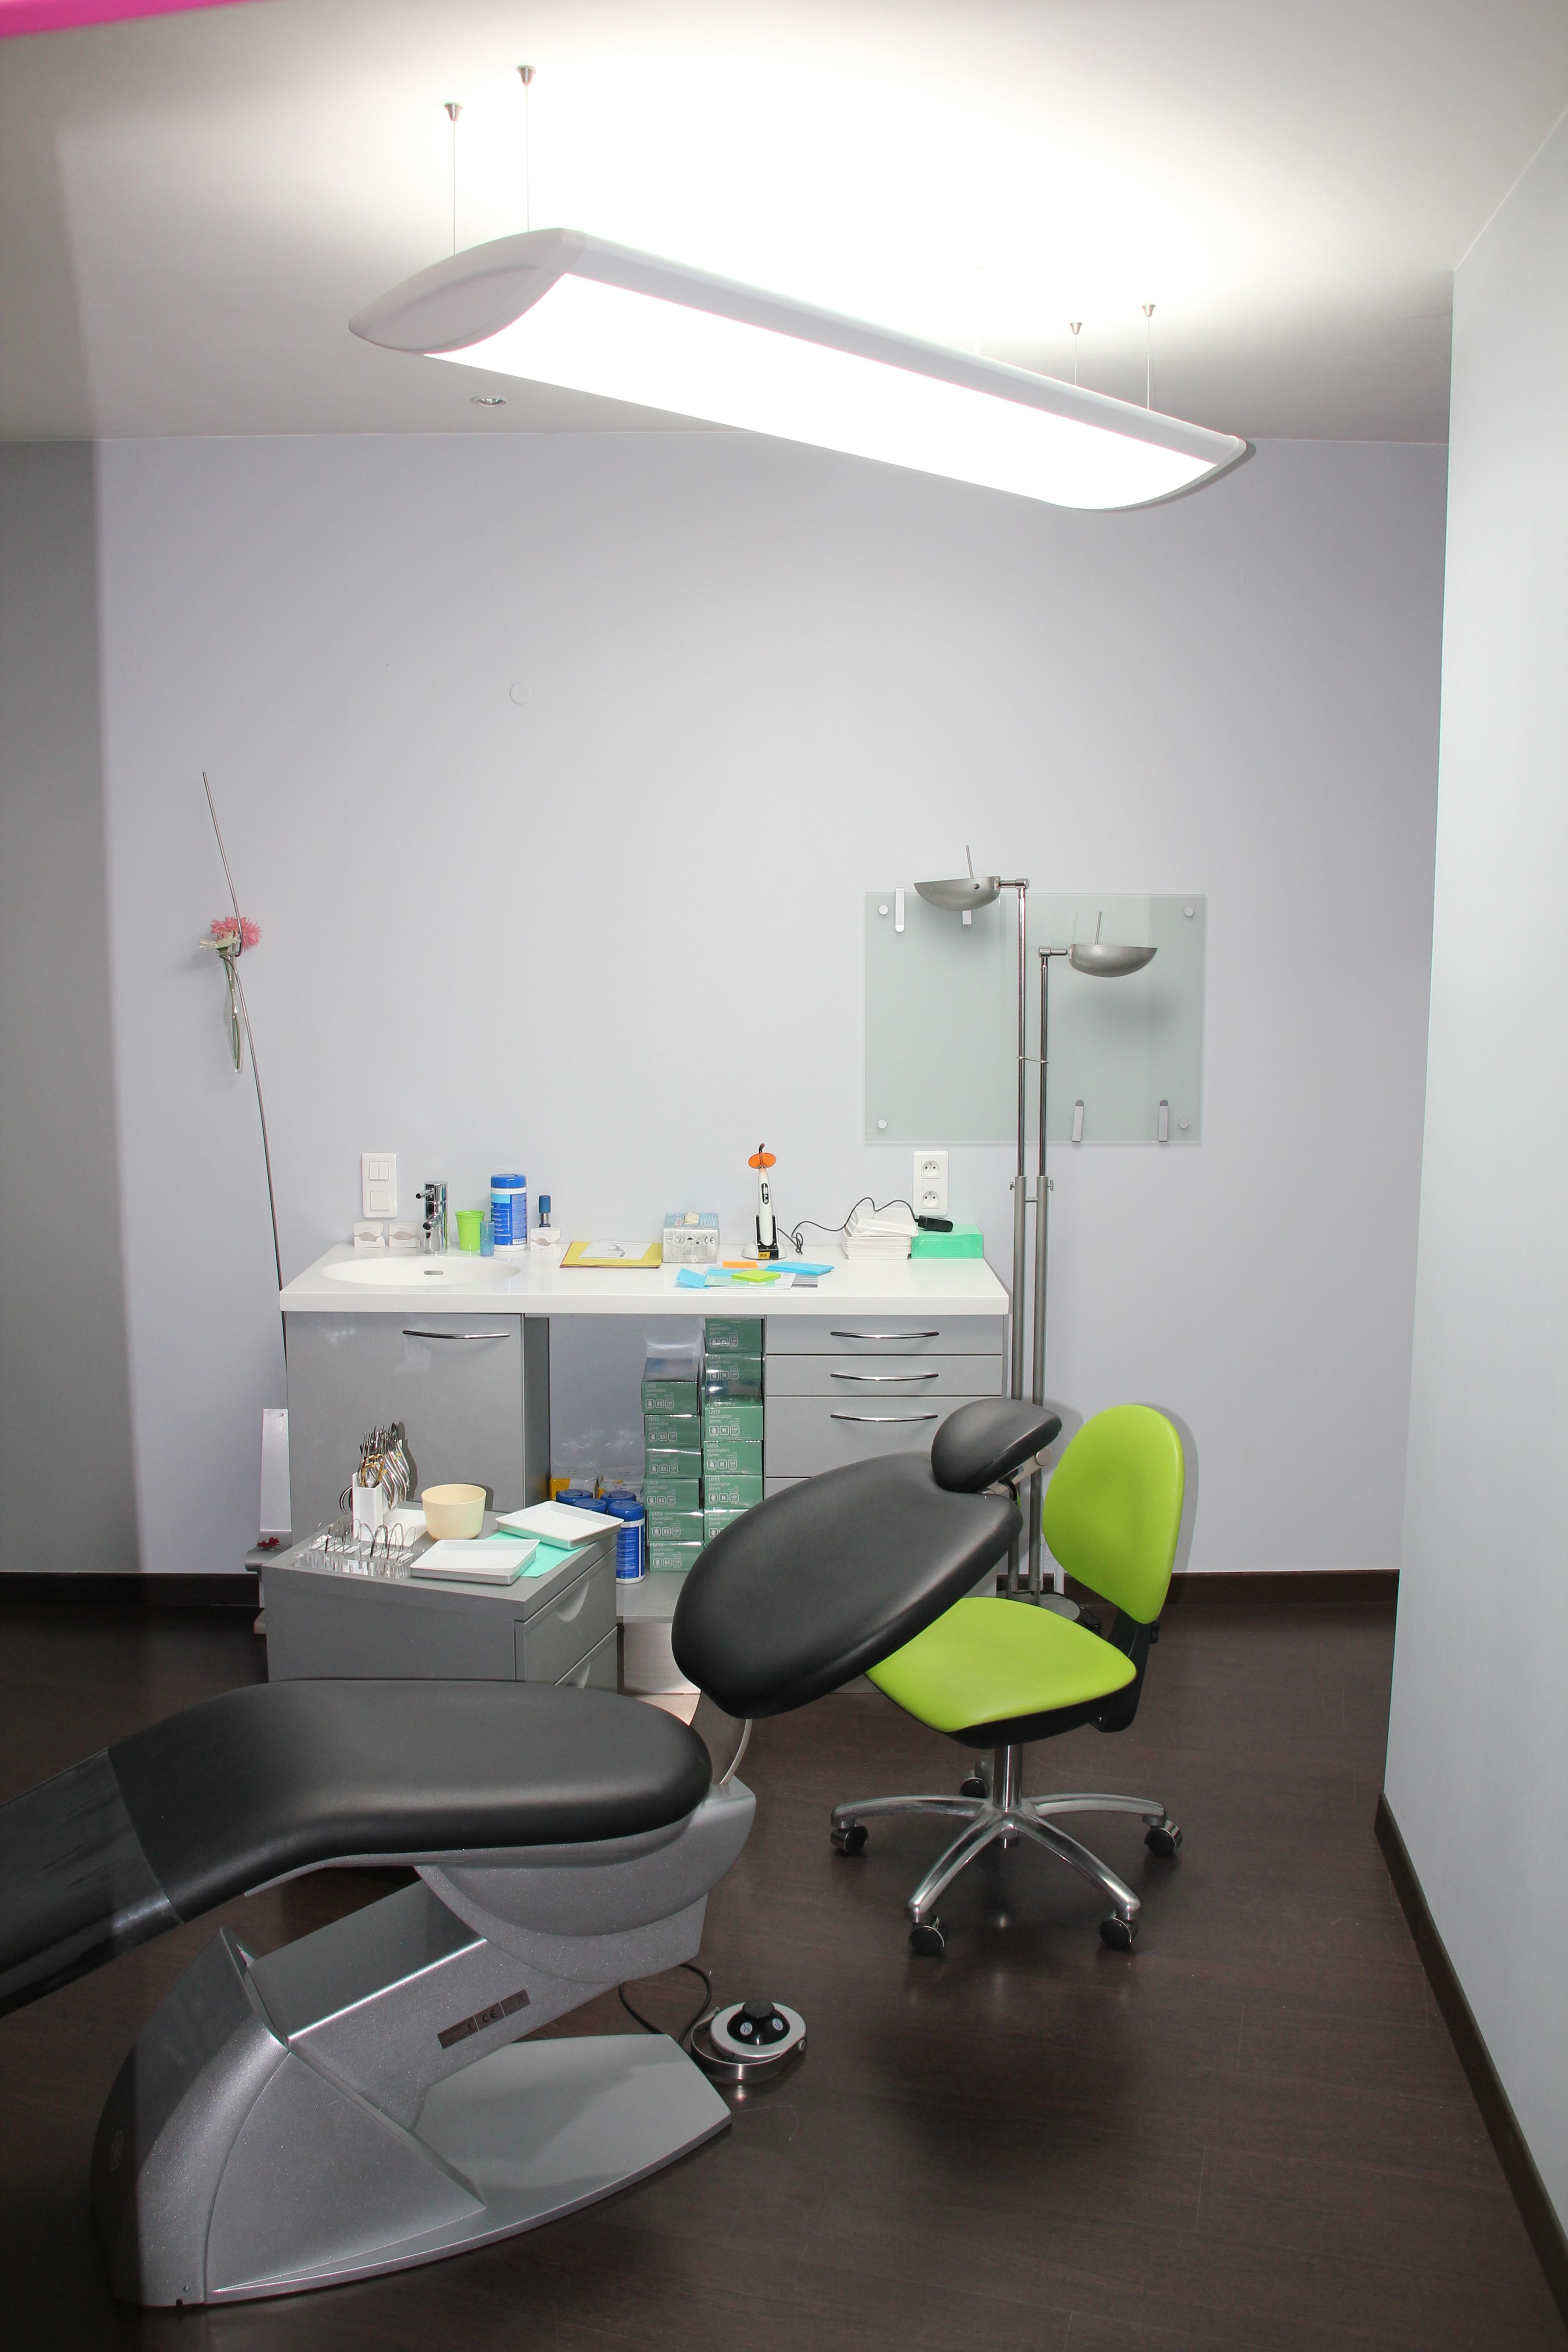 Cabinet d 39 orthodontie toulouse docteur axelle guibert orthodontiste toulouse - Cabinet d audit toulouse ...